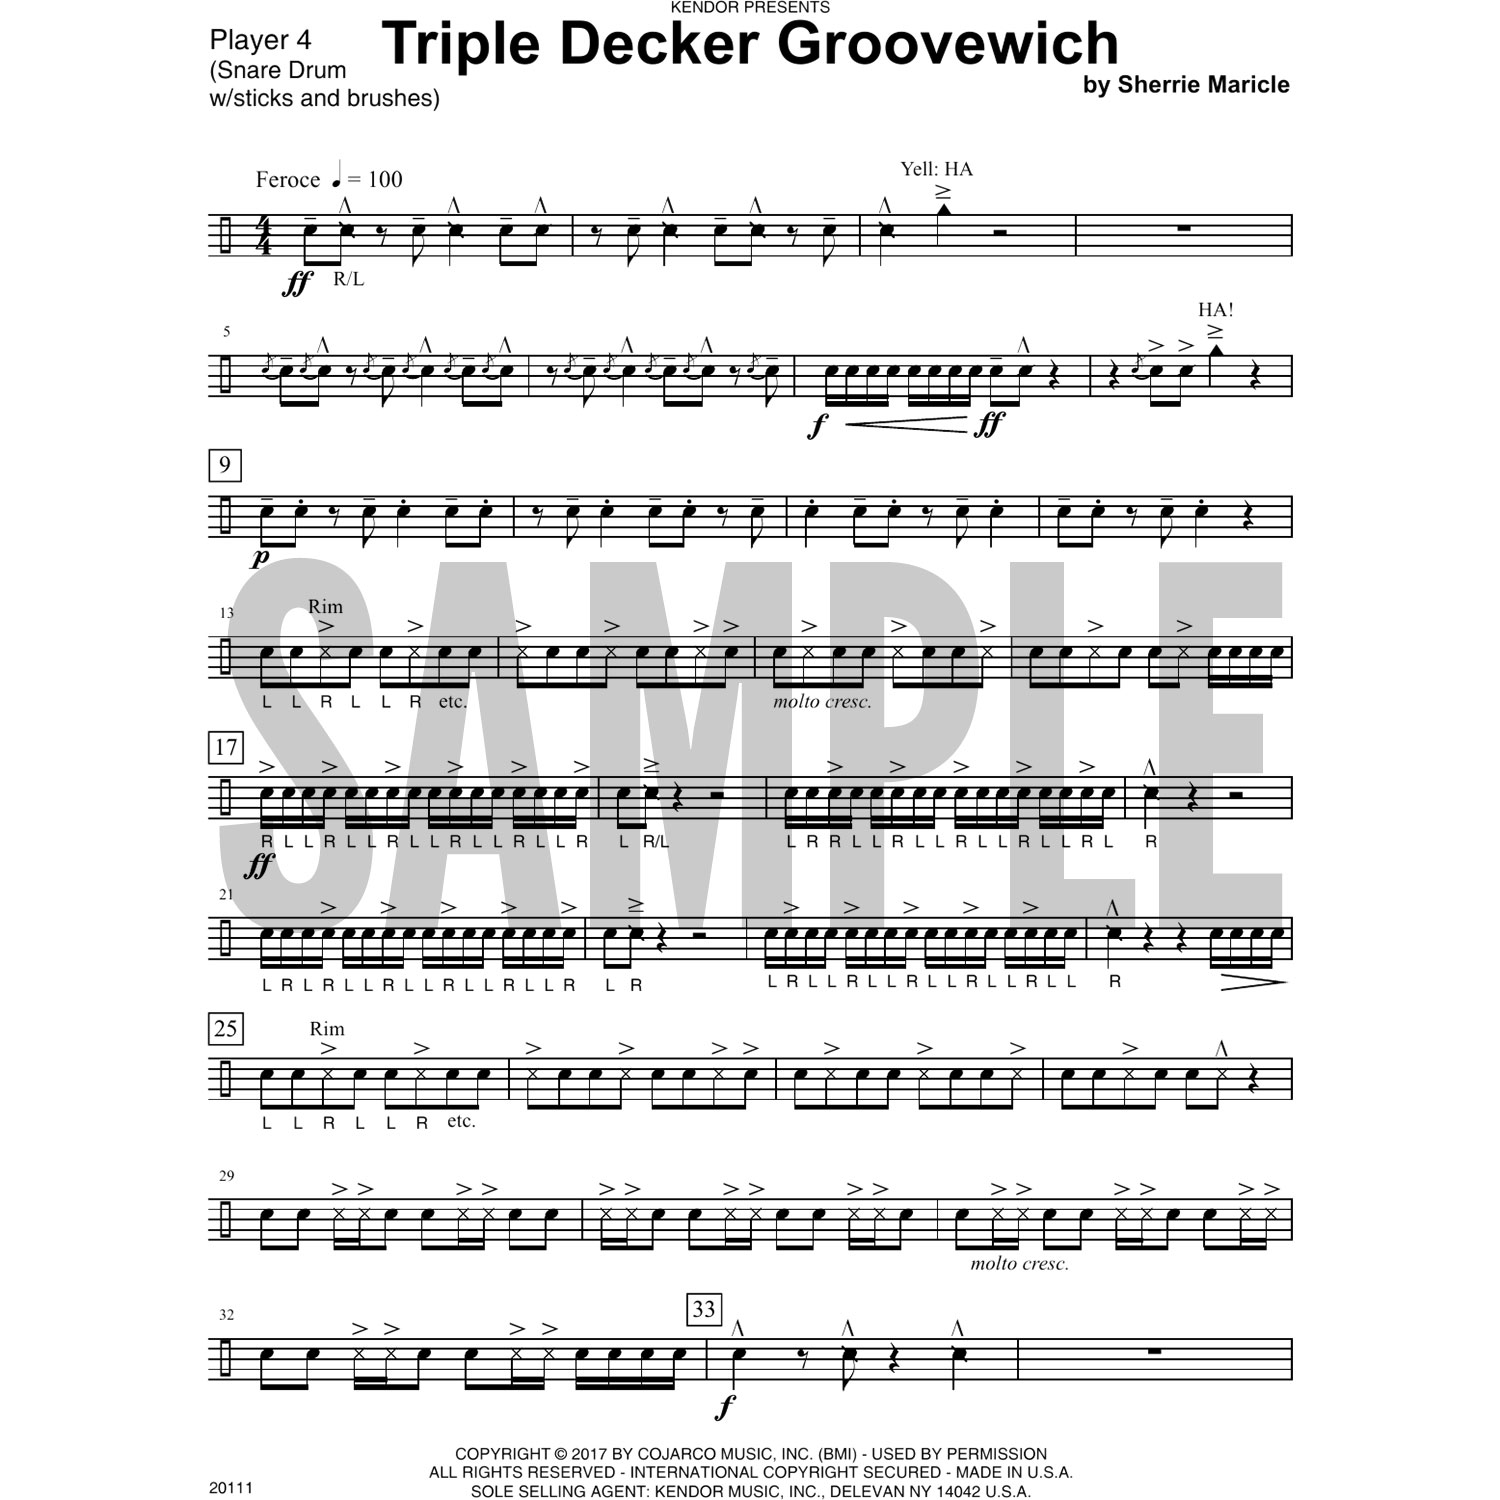 Triple Decker Groovewich by Sherrie Maricle